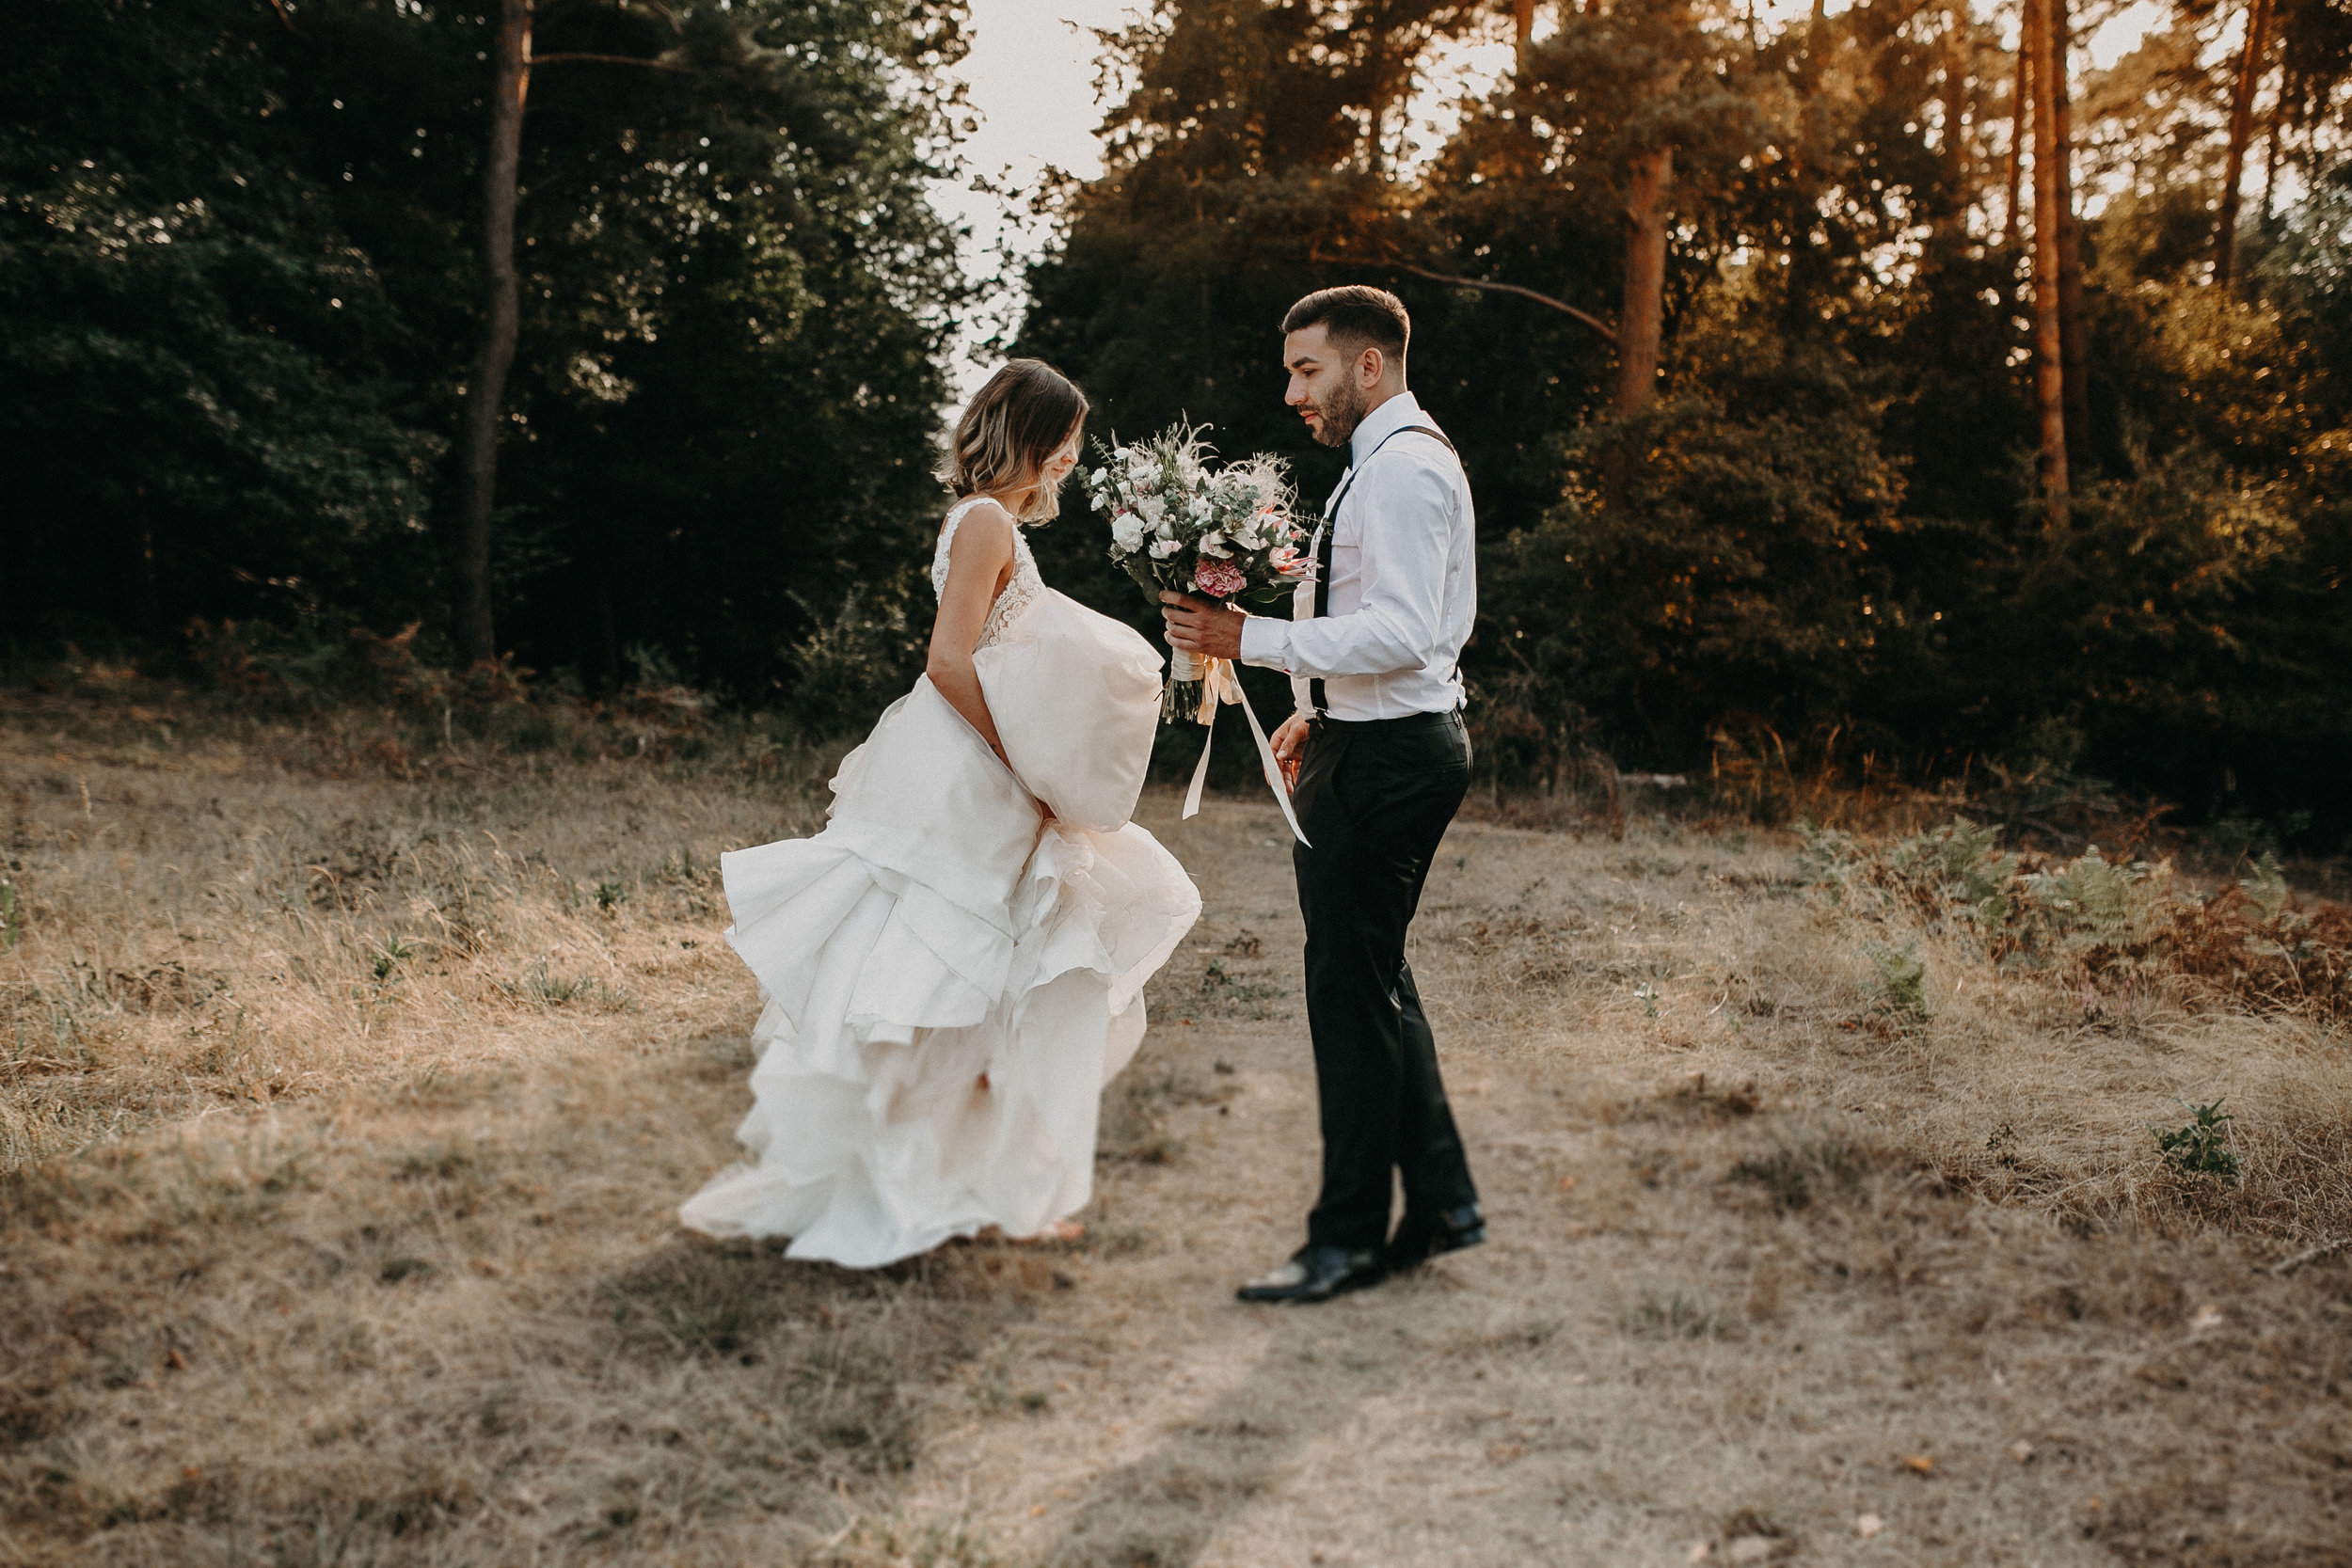 026After Wedding Jacky + Paddy August 2018.jpg